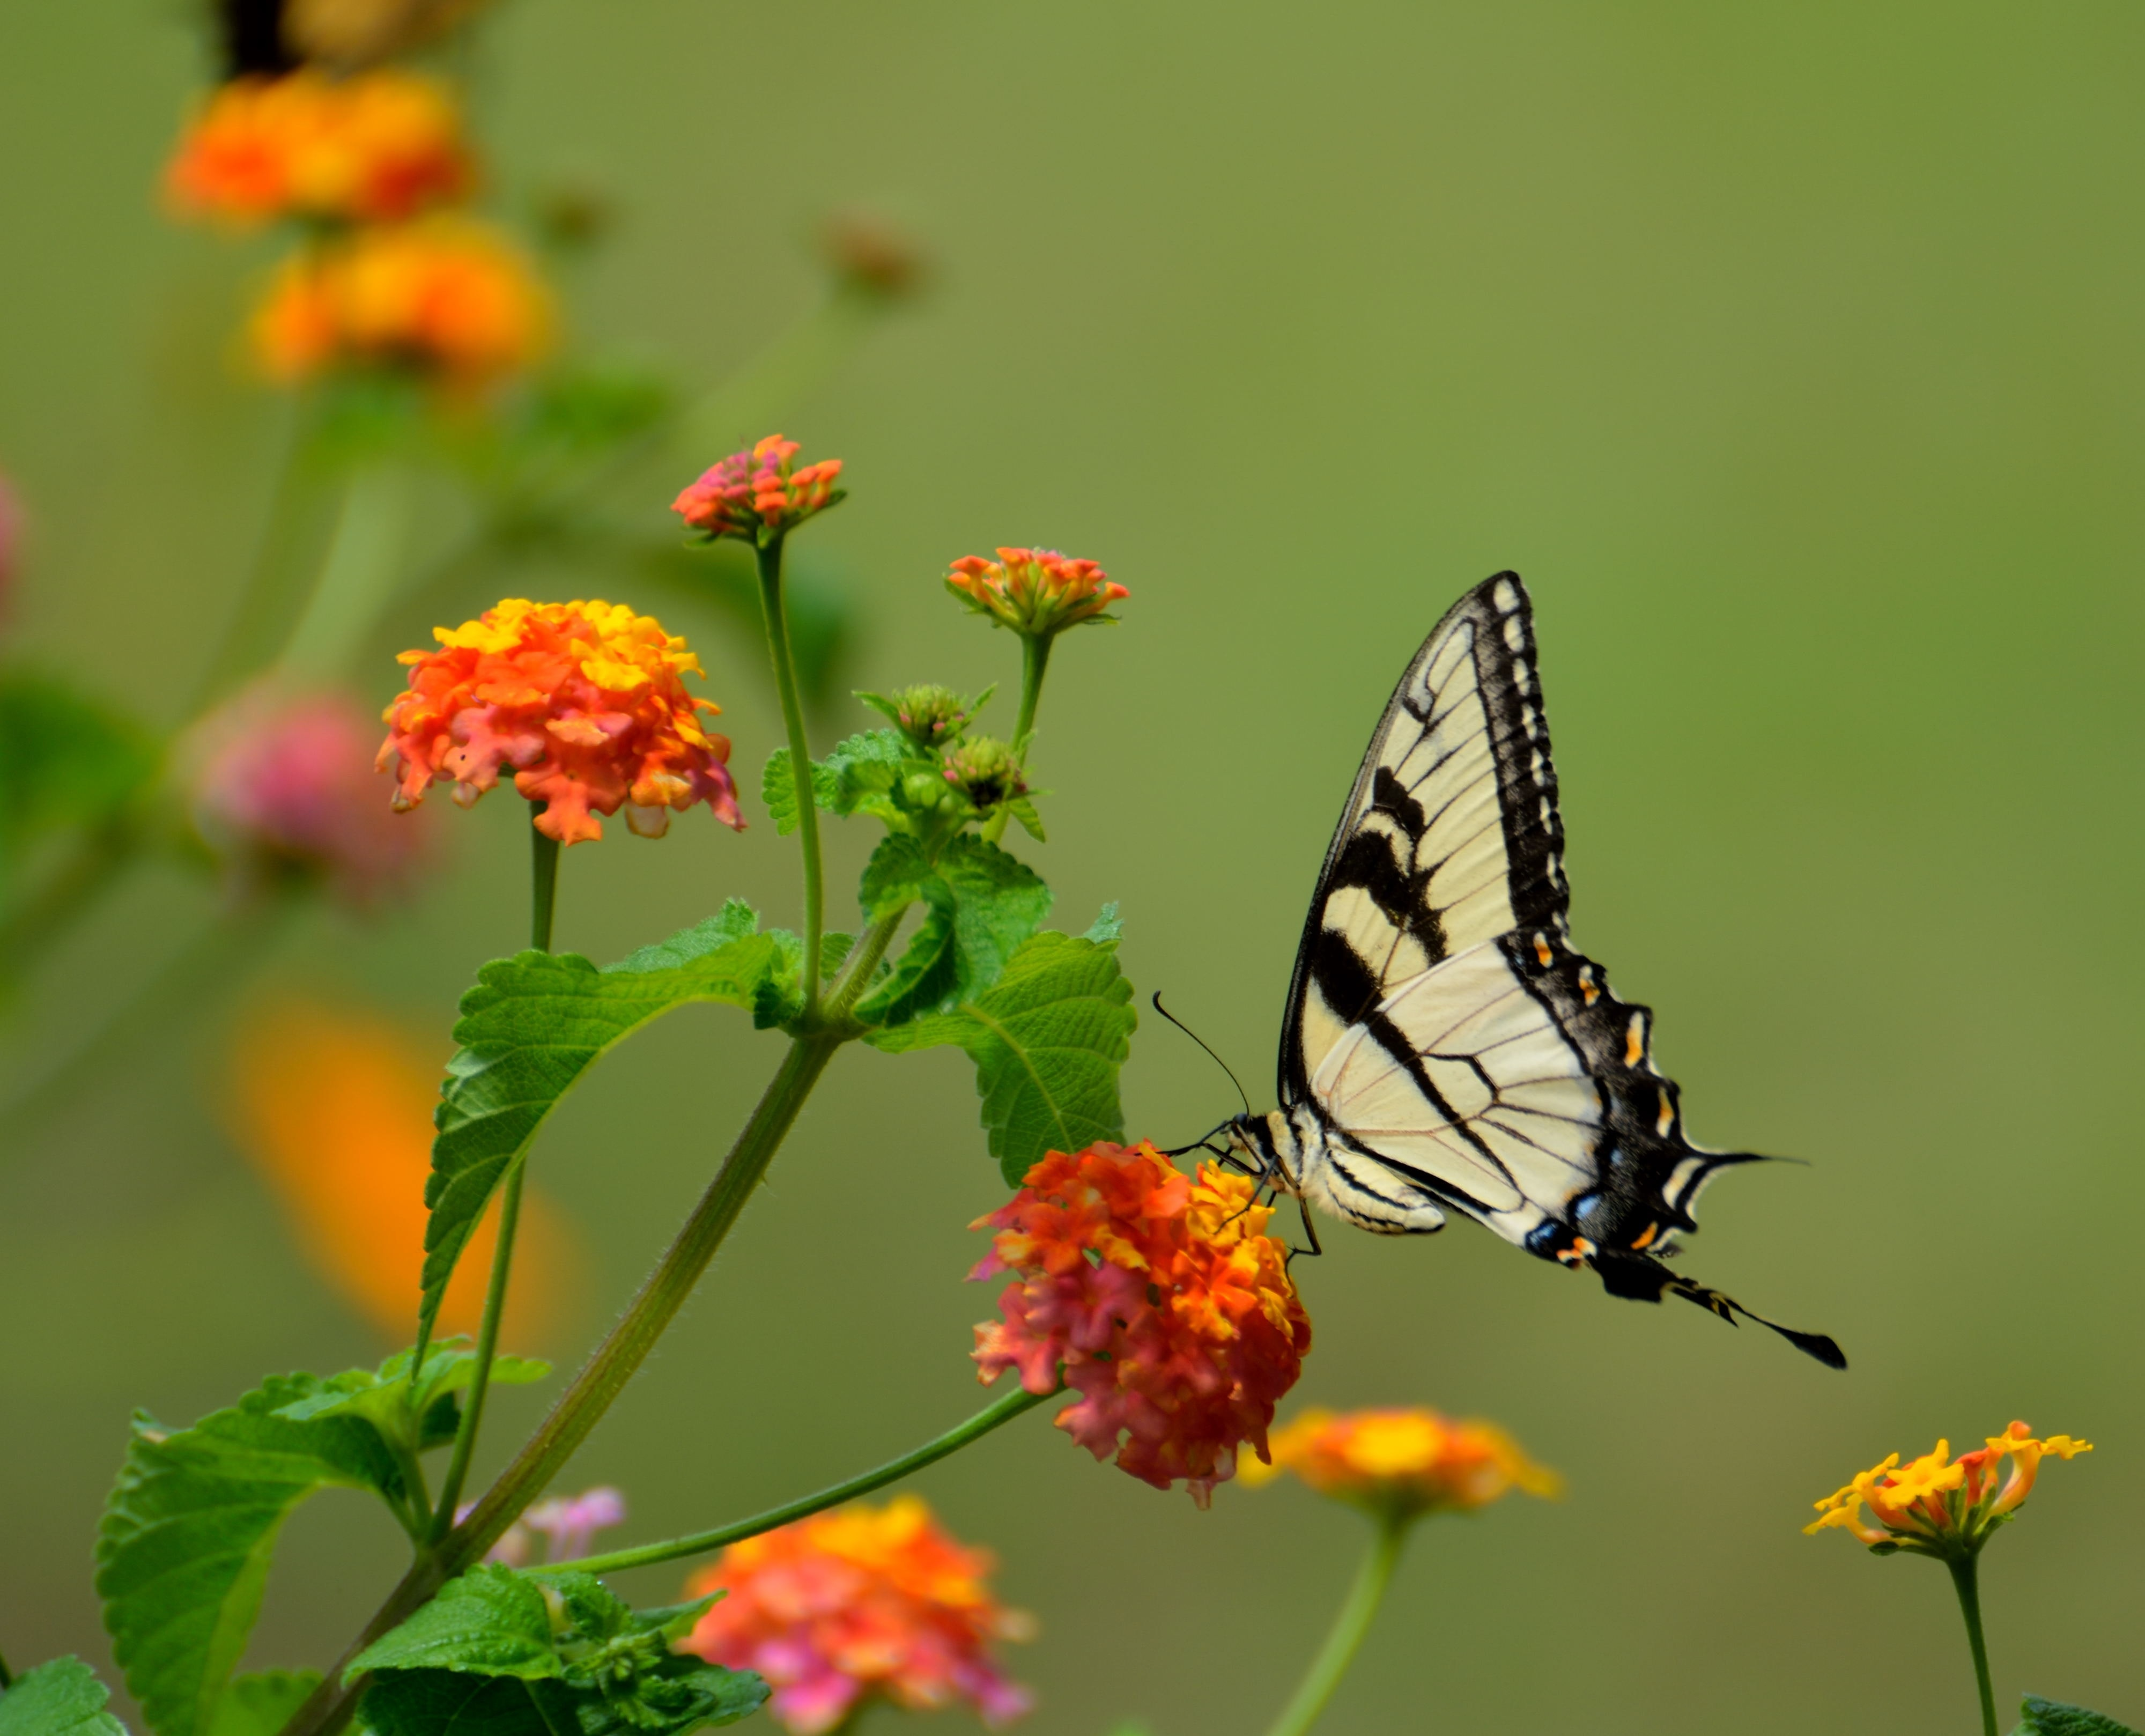 Bird Wallpaper 243 Beautiful Butterfly Pictures 183 Pexels 183 Free Stock Photos